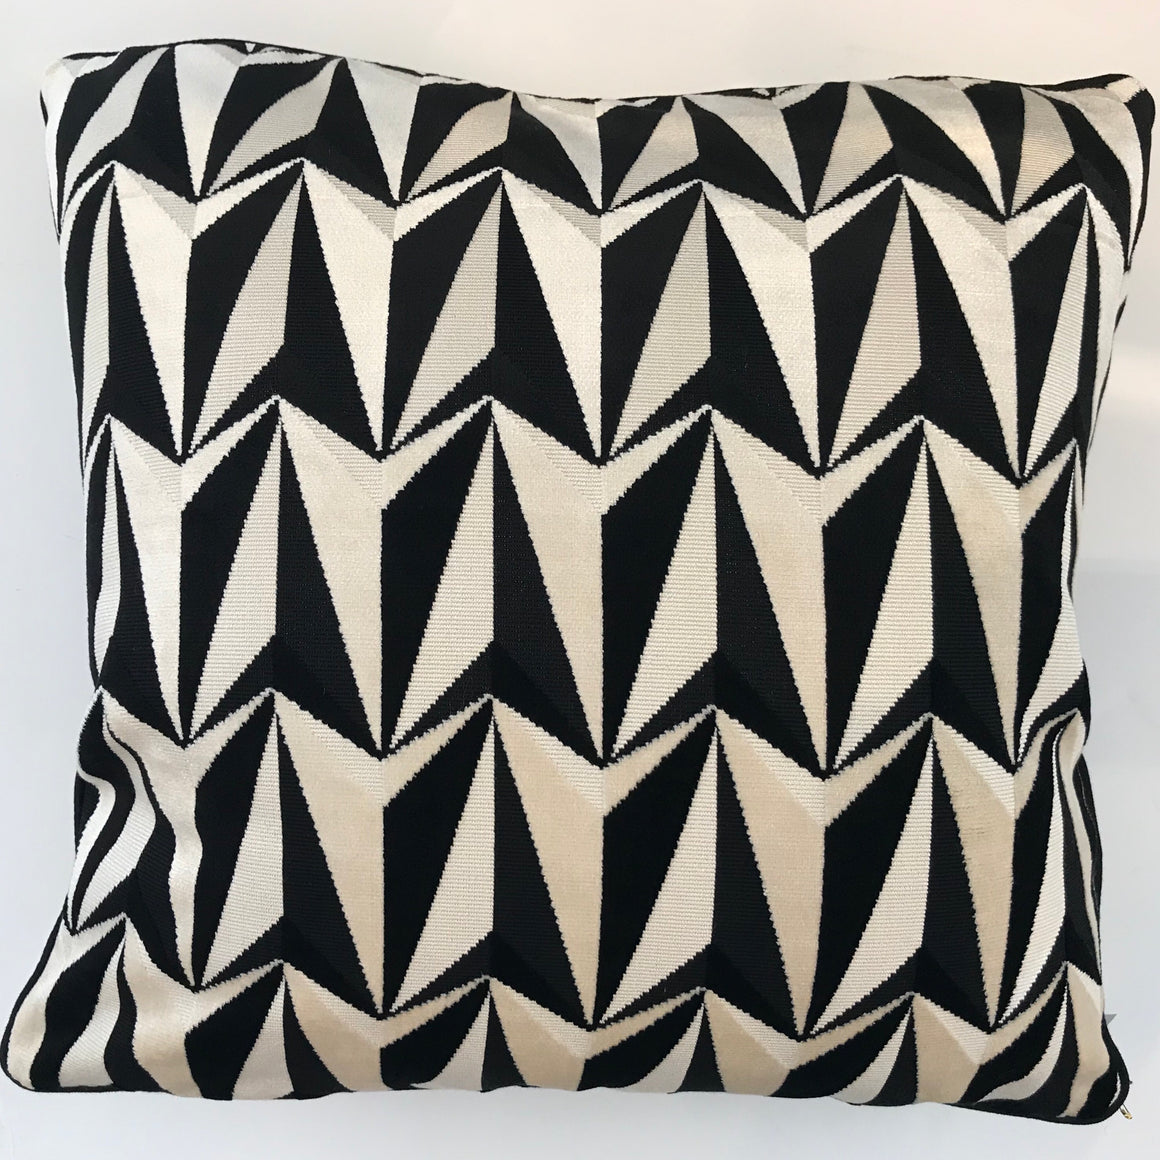 BABS PILLOW- Black and Cream Pattern- 23x23- Two In Stock- FREE SHIPPING